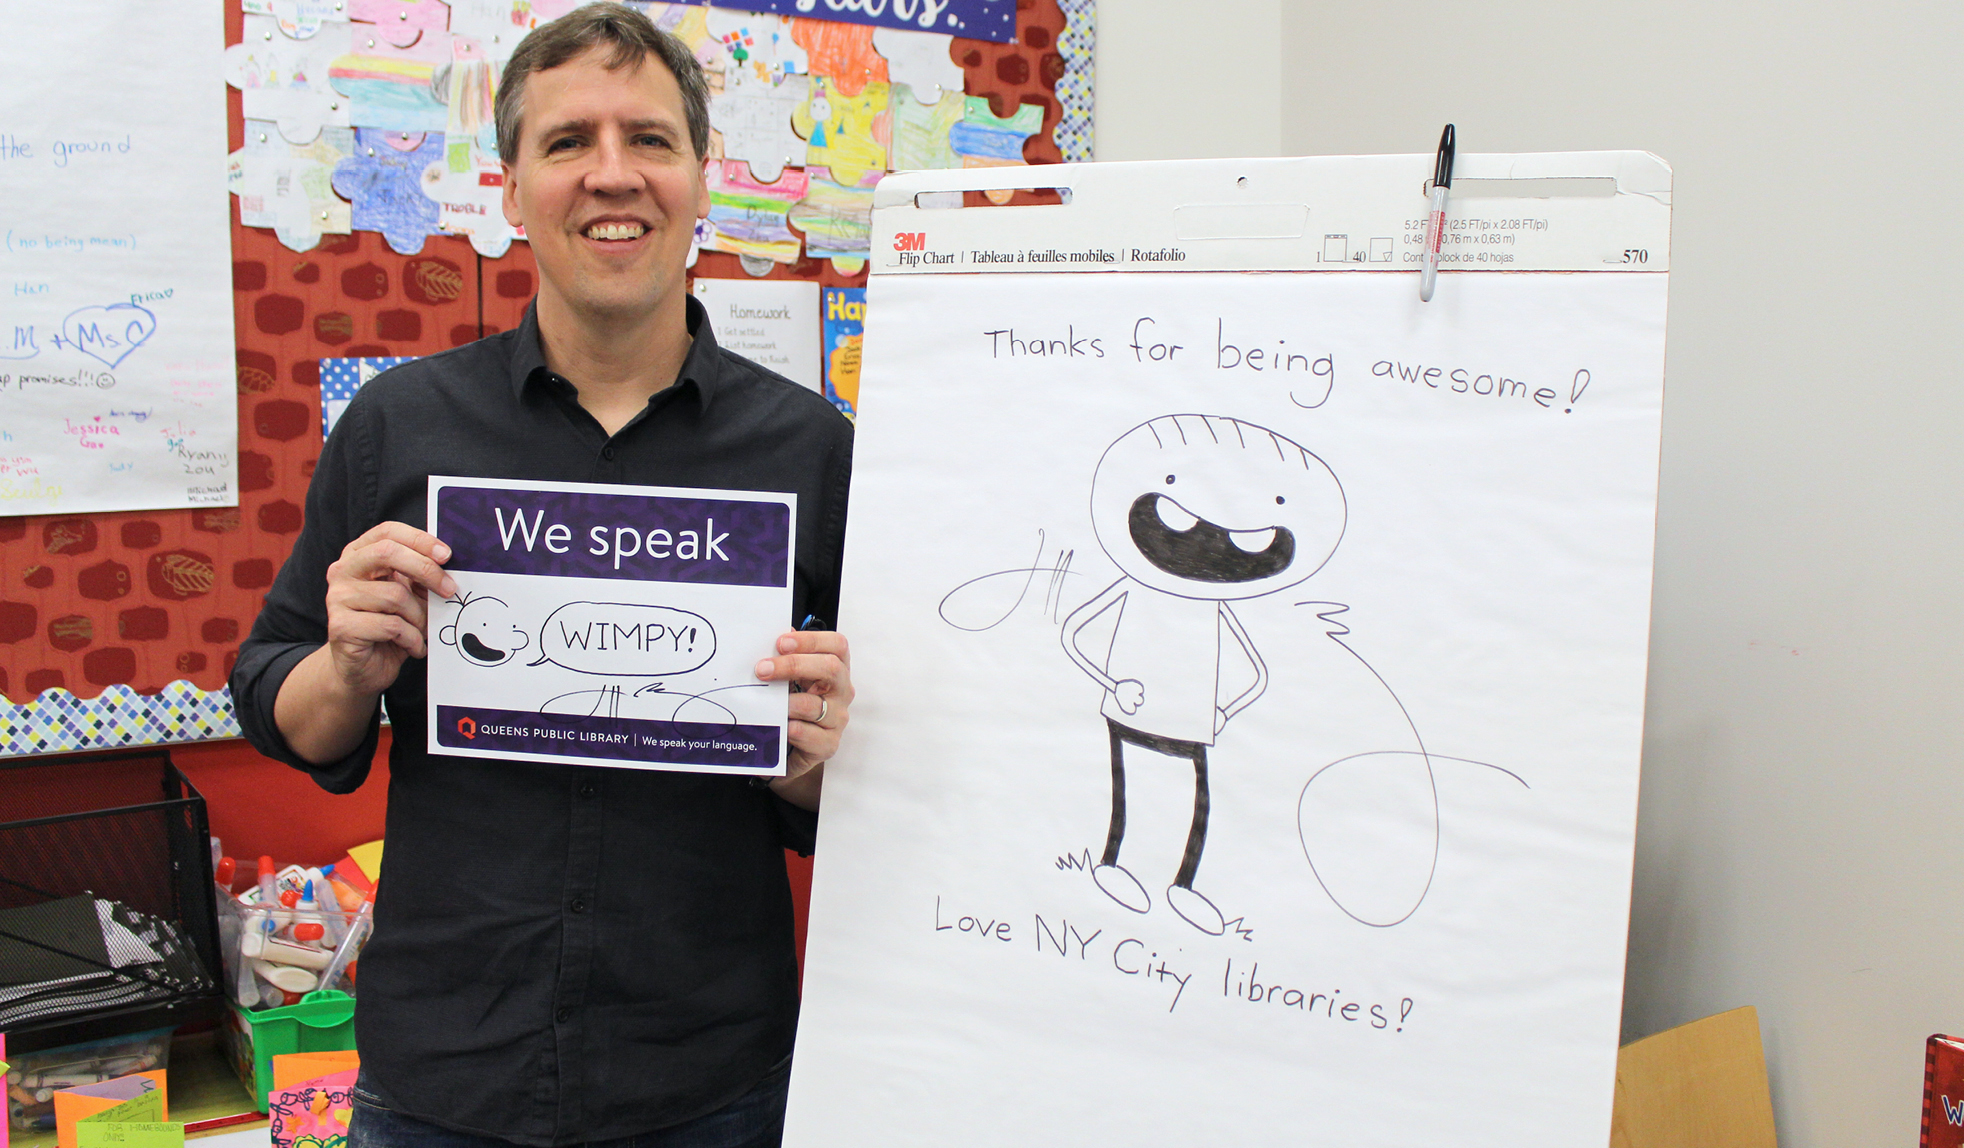 Jeff Kinney at Queens Public Library